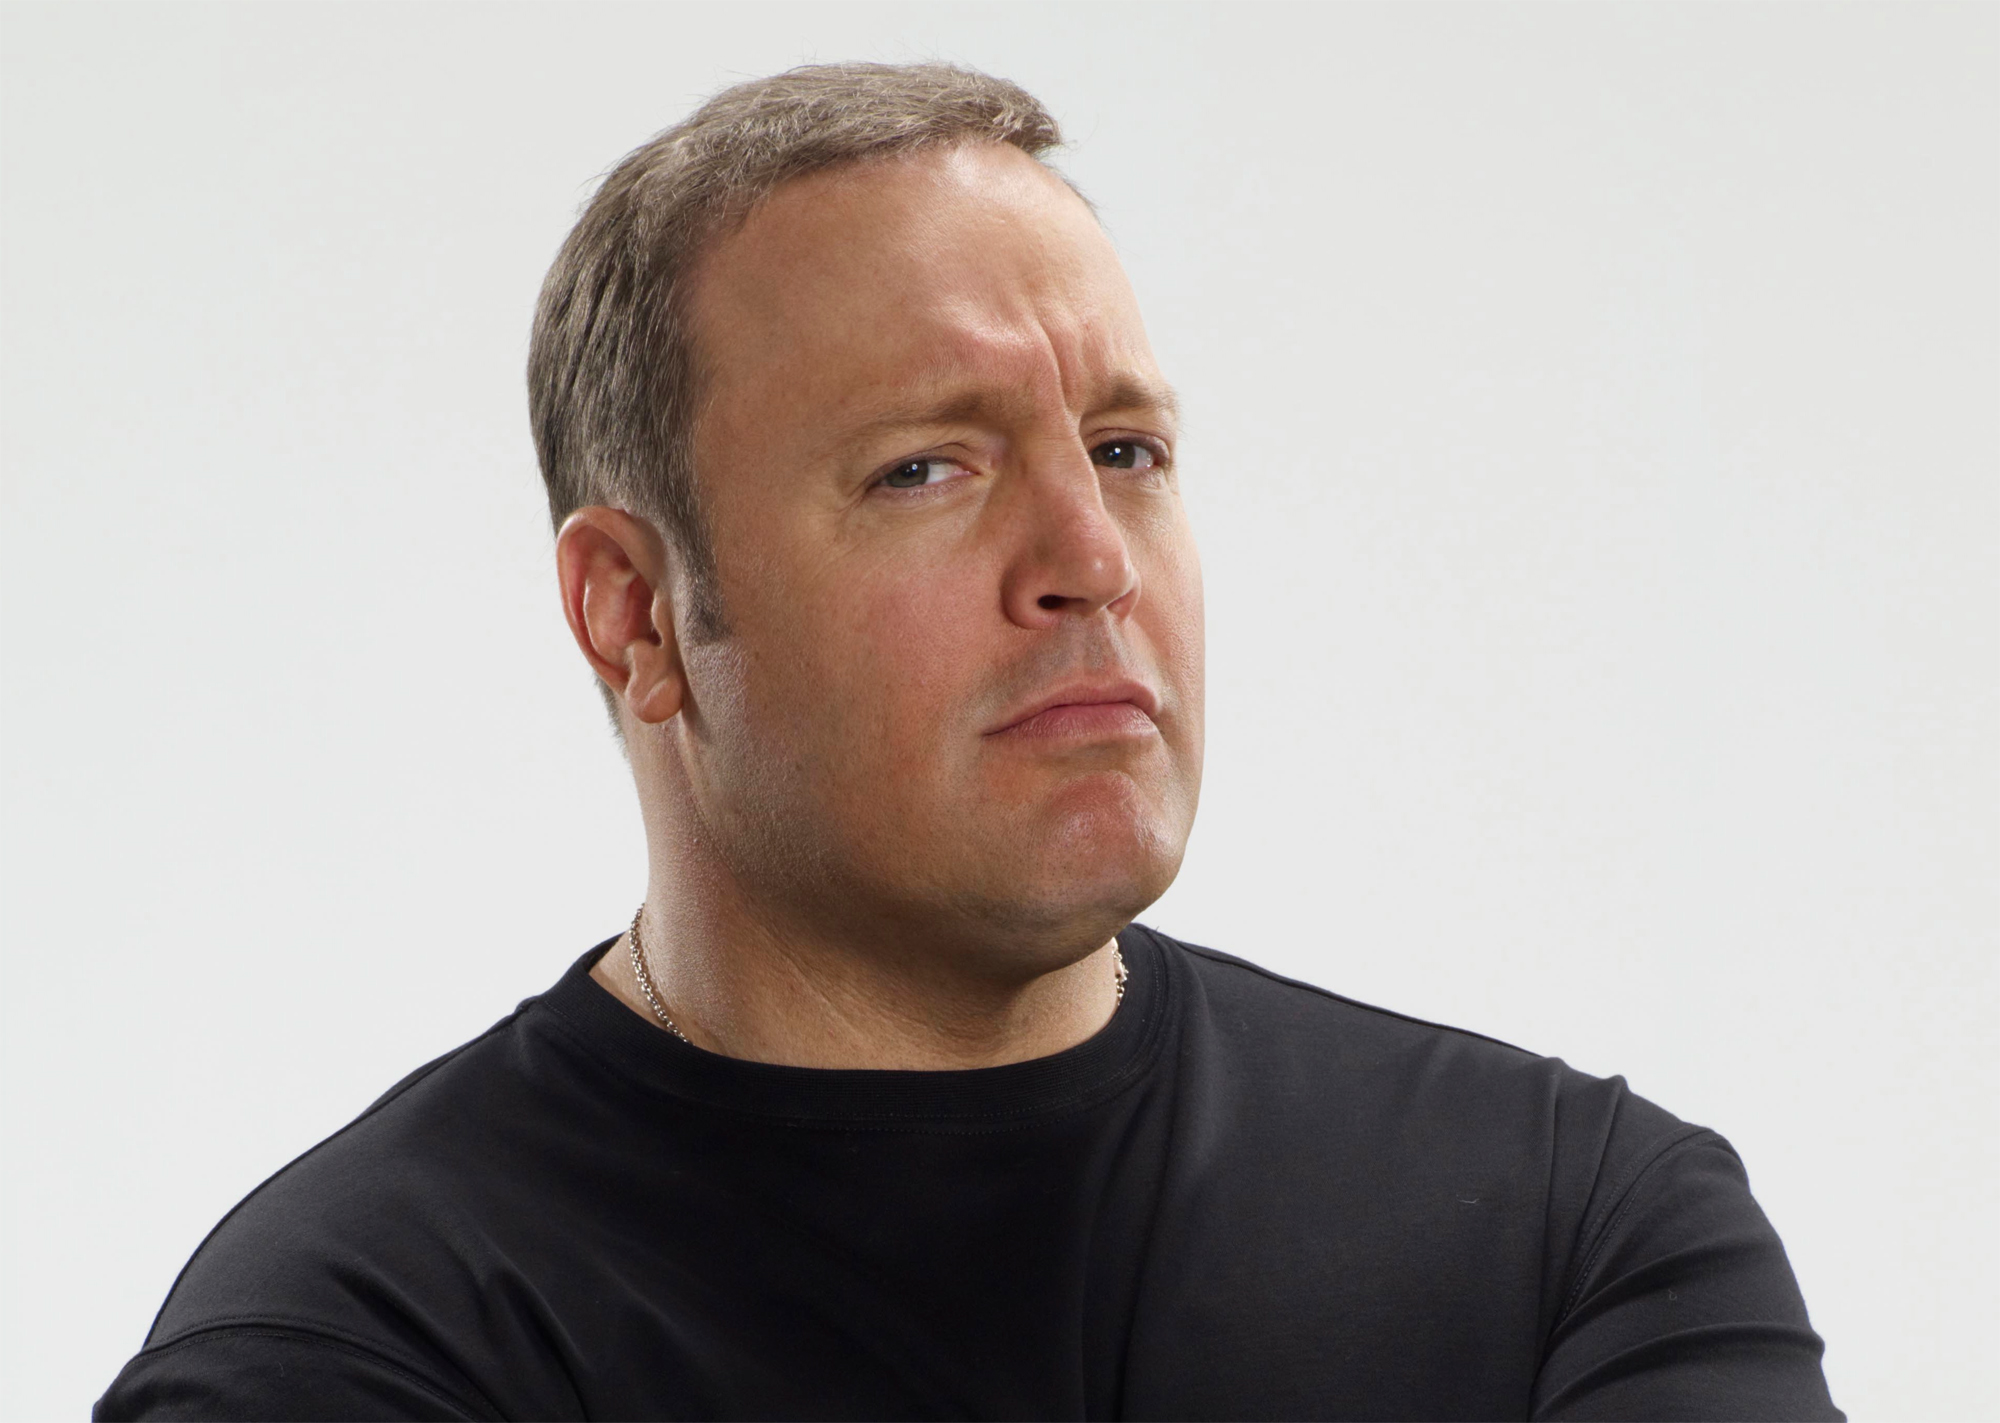 comedian and actor kevin james returns to kirby center in wilkes